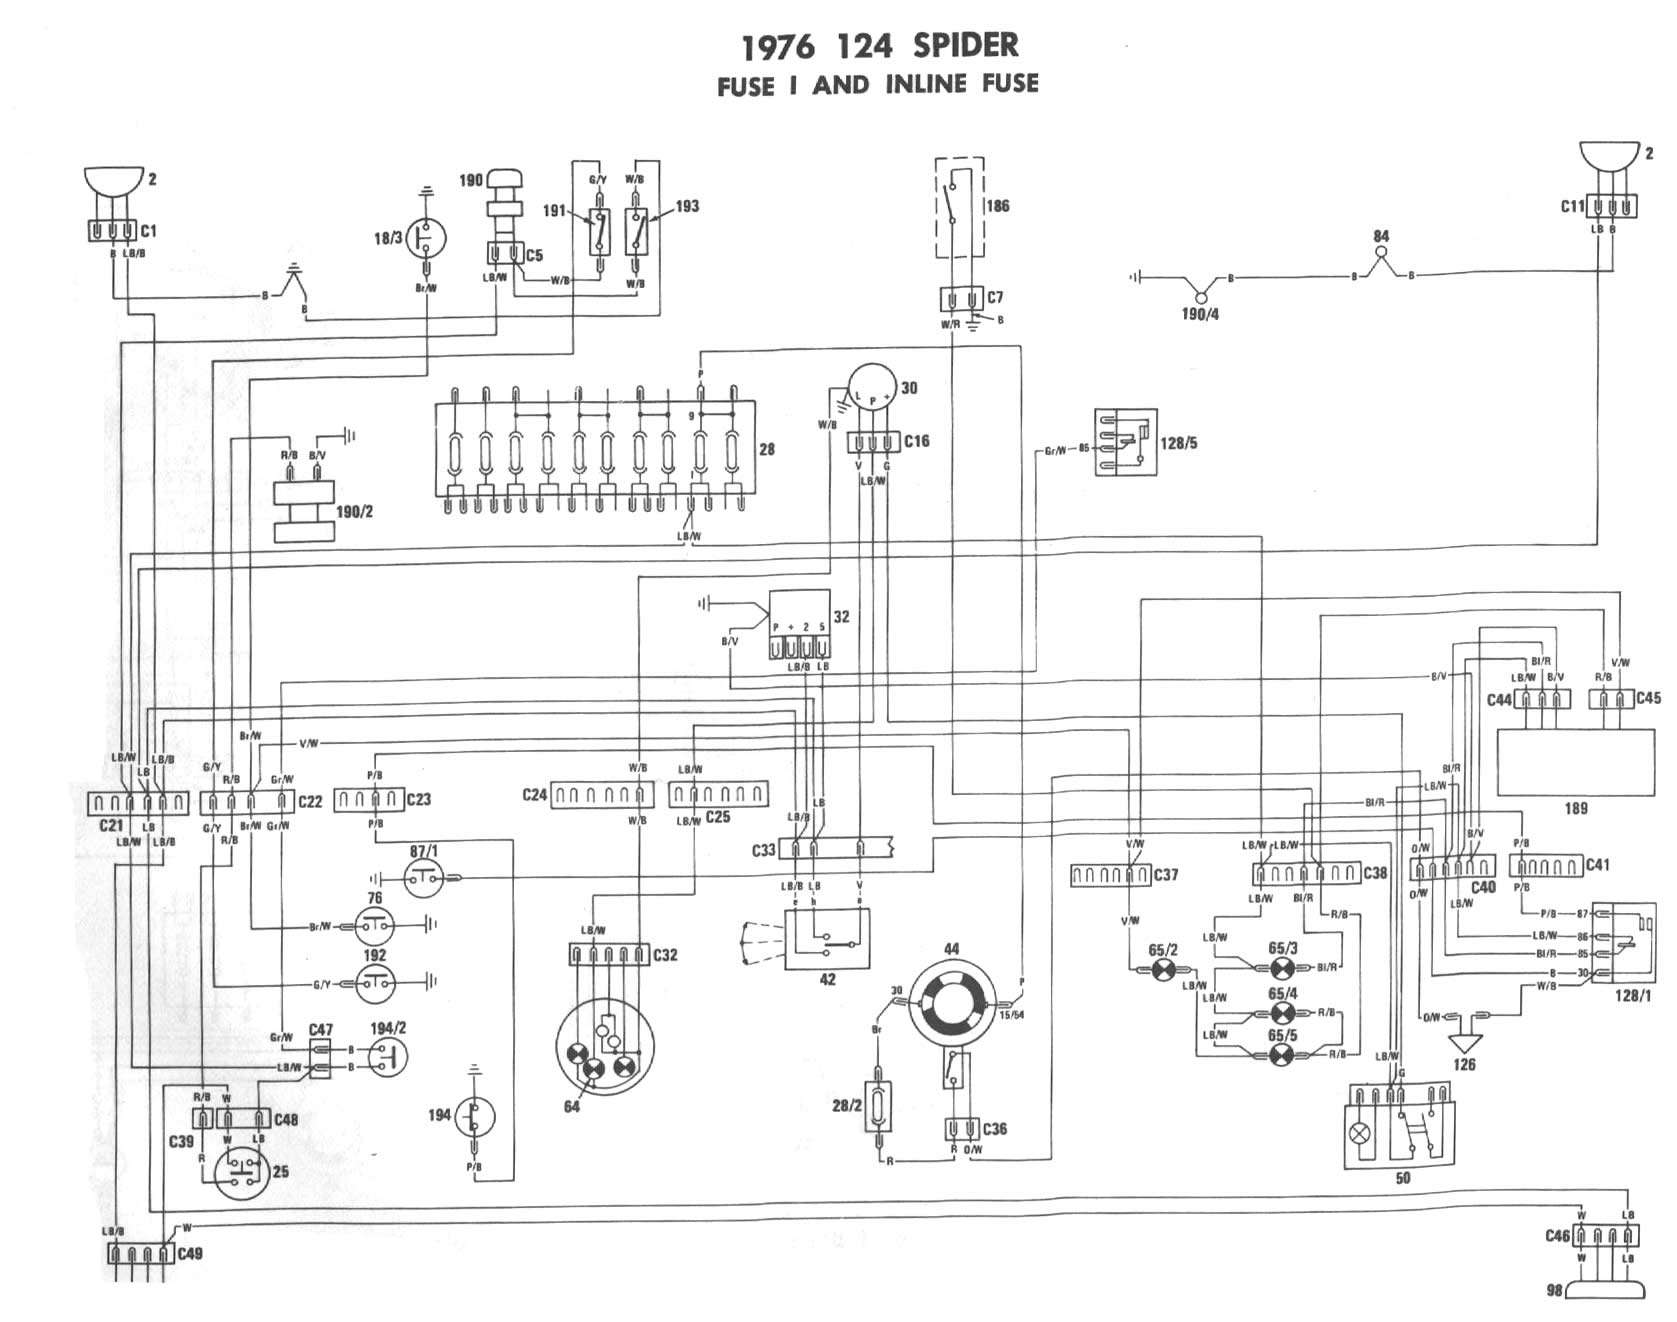 fiat spider wiring diagram transformer single phase 1976 diagrams